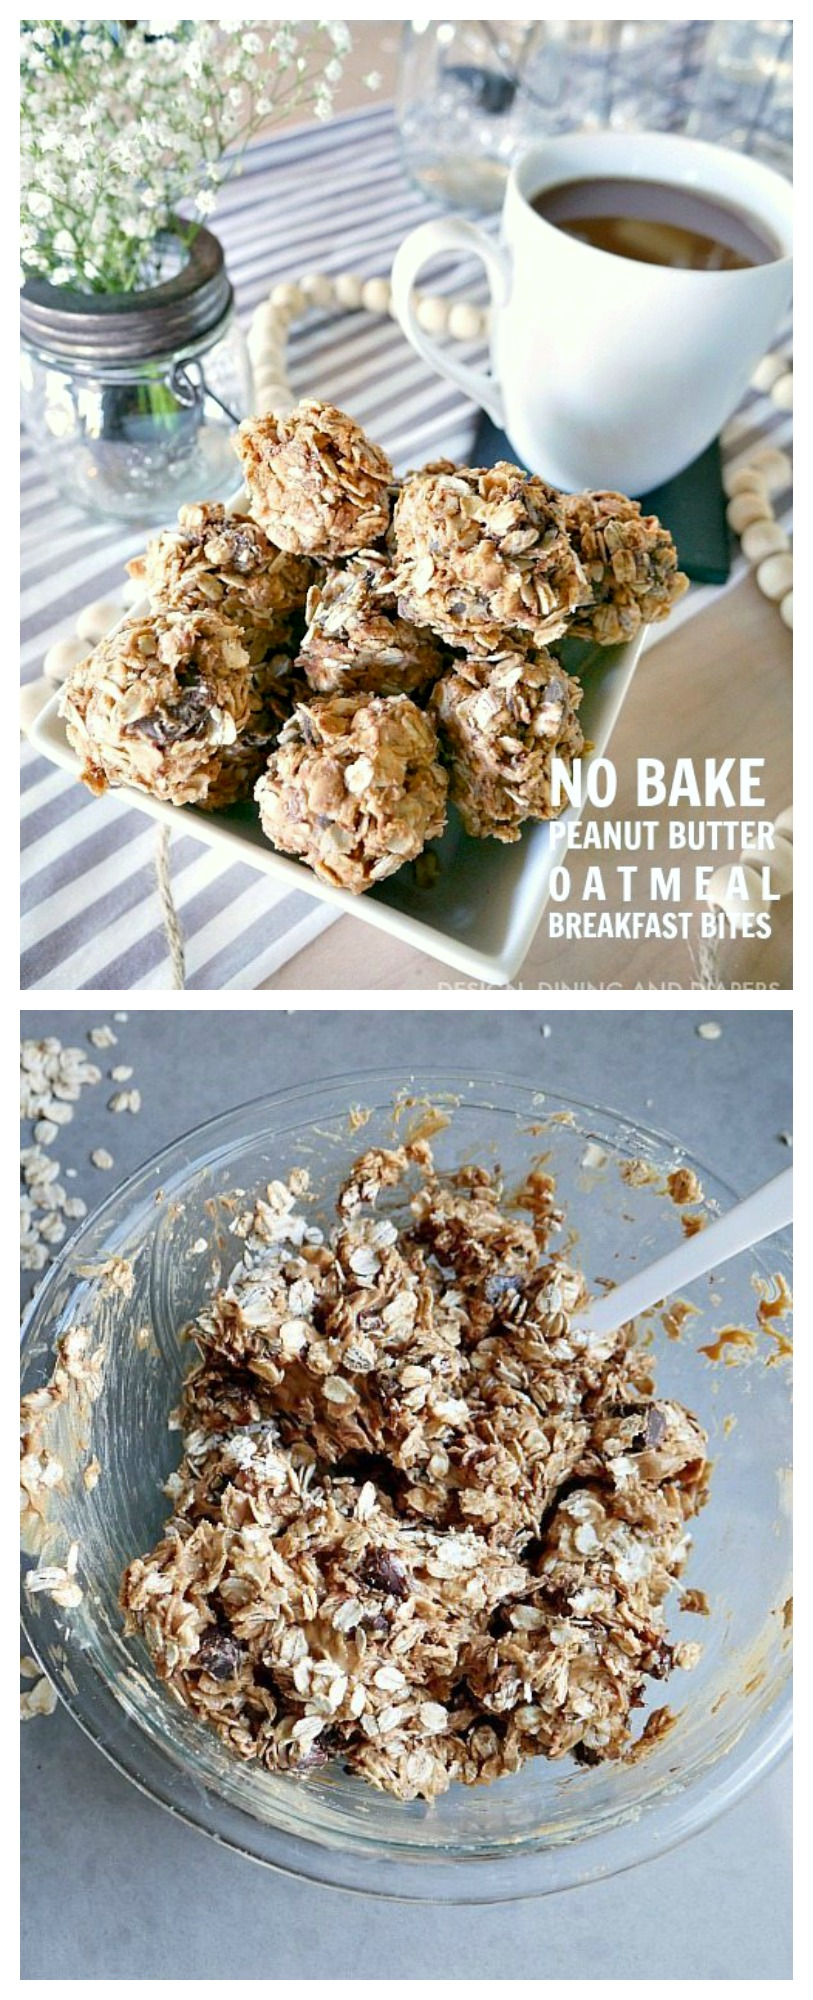 These Peanut Butter and Chocolate Oatmeal Breakfast Bites are the way to go! This easy no bake breakfast recipe is perfect for a quick bite in the morning!